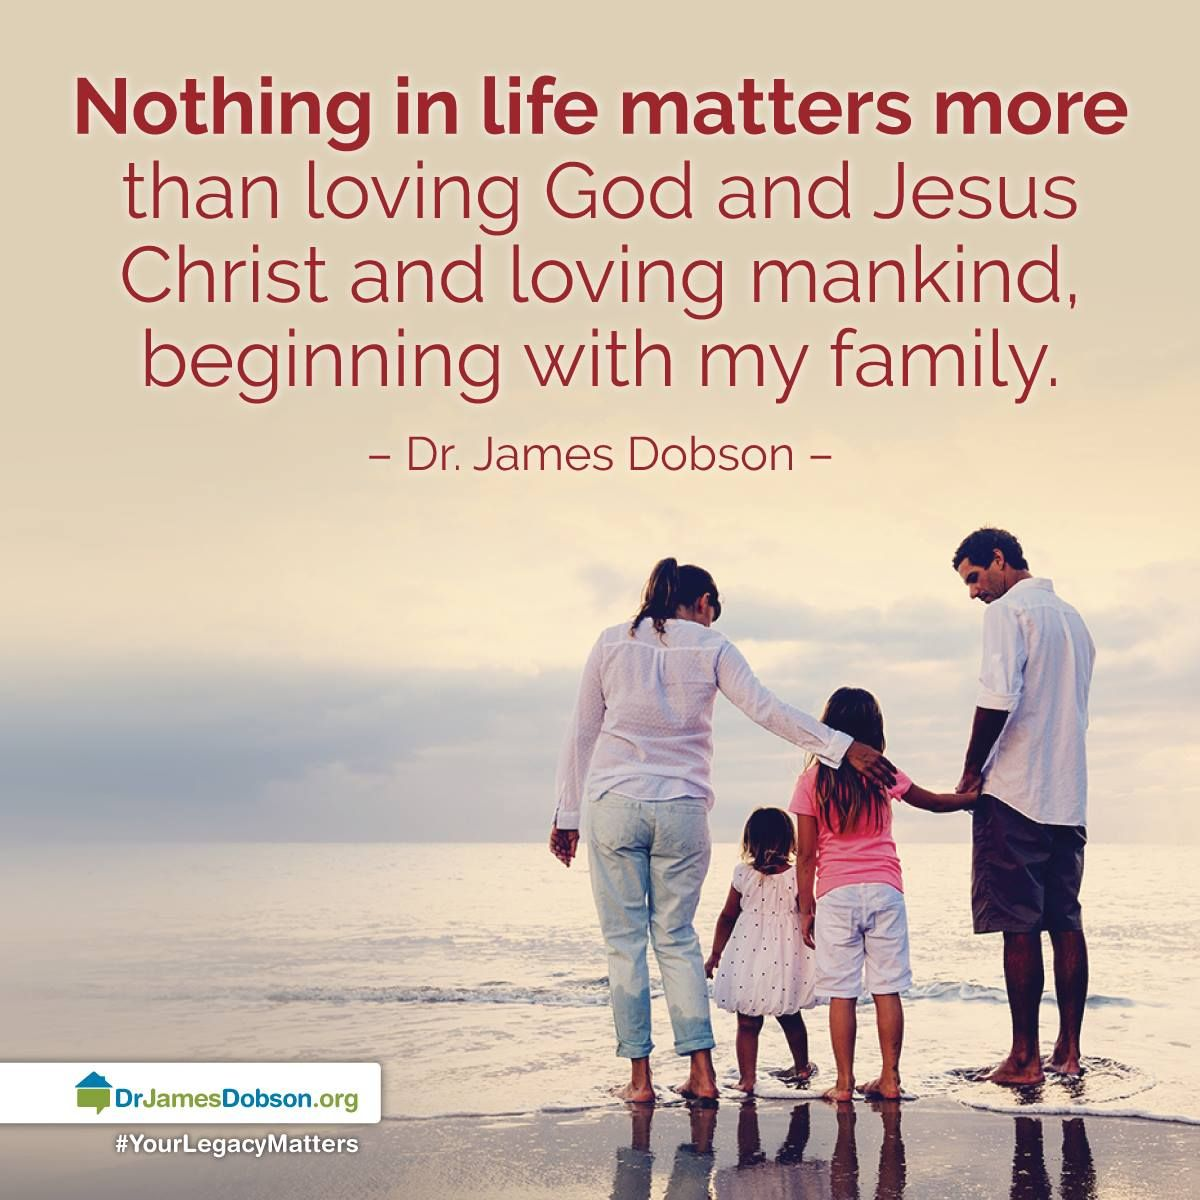 Love your family!